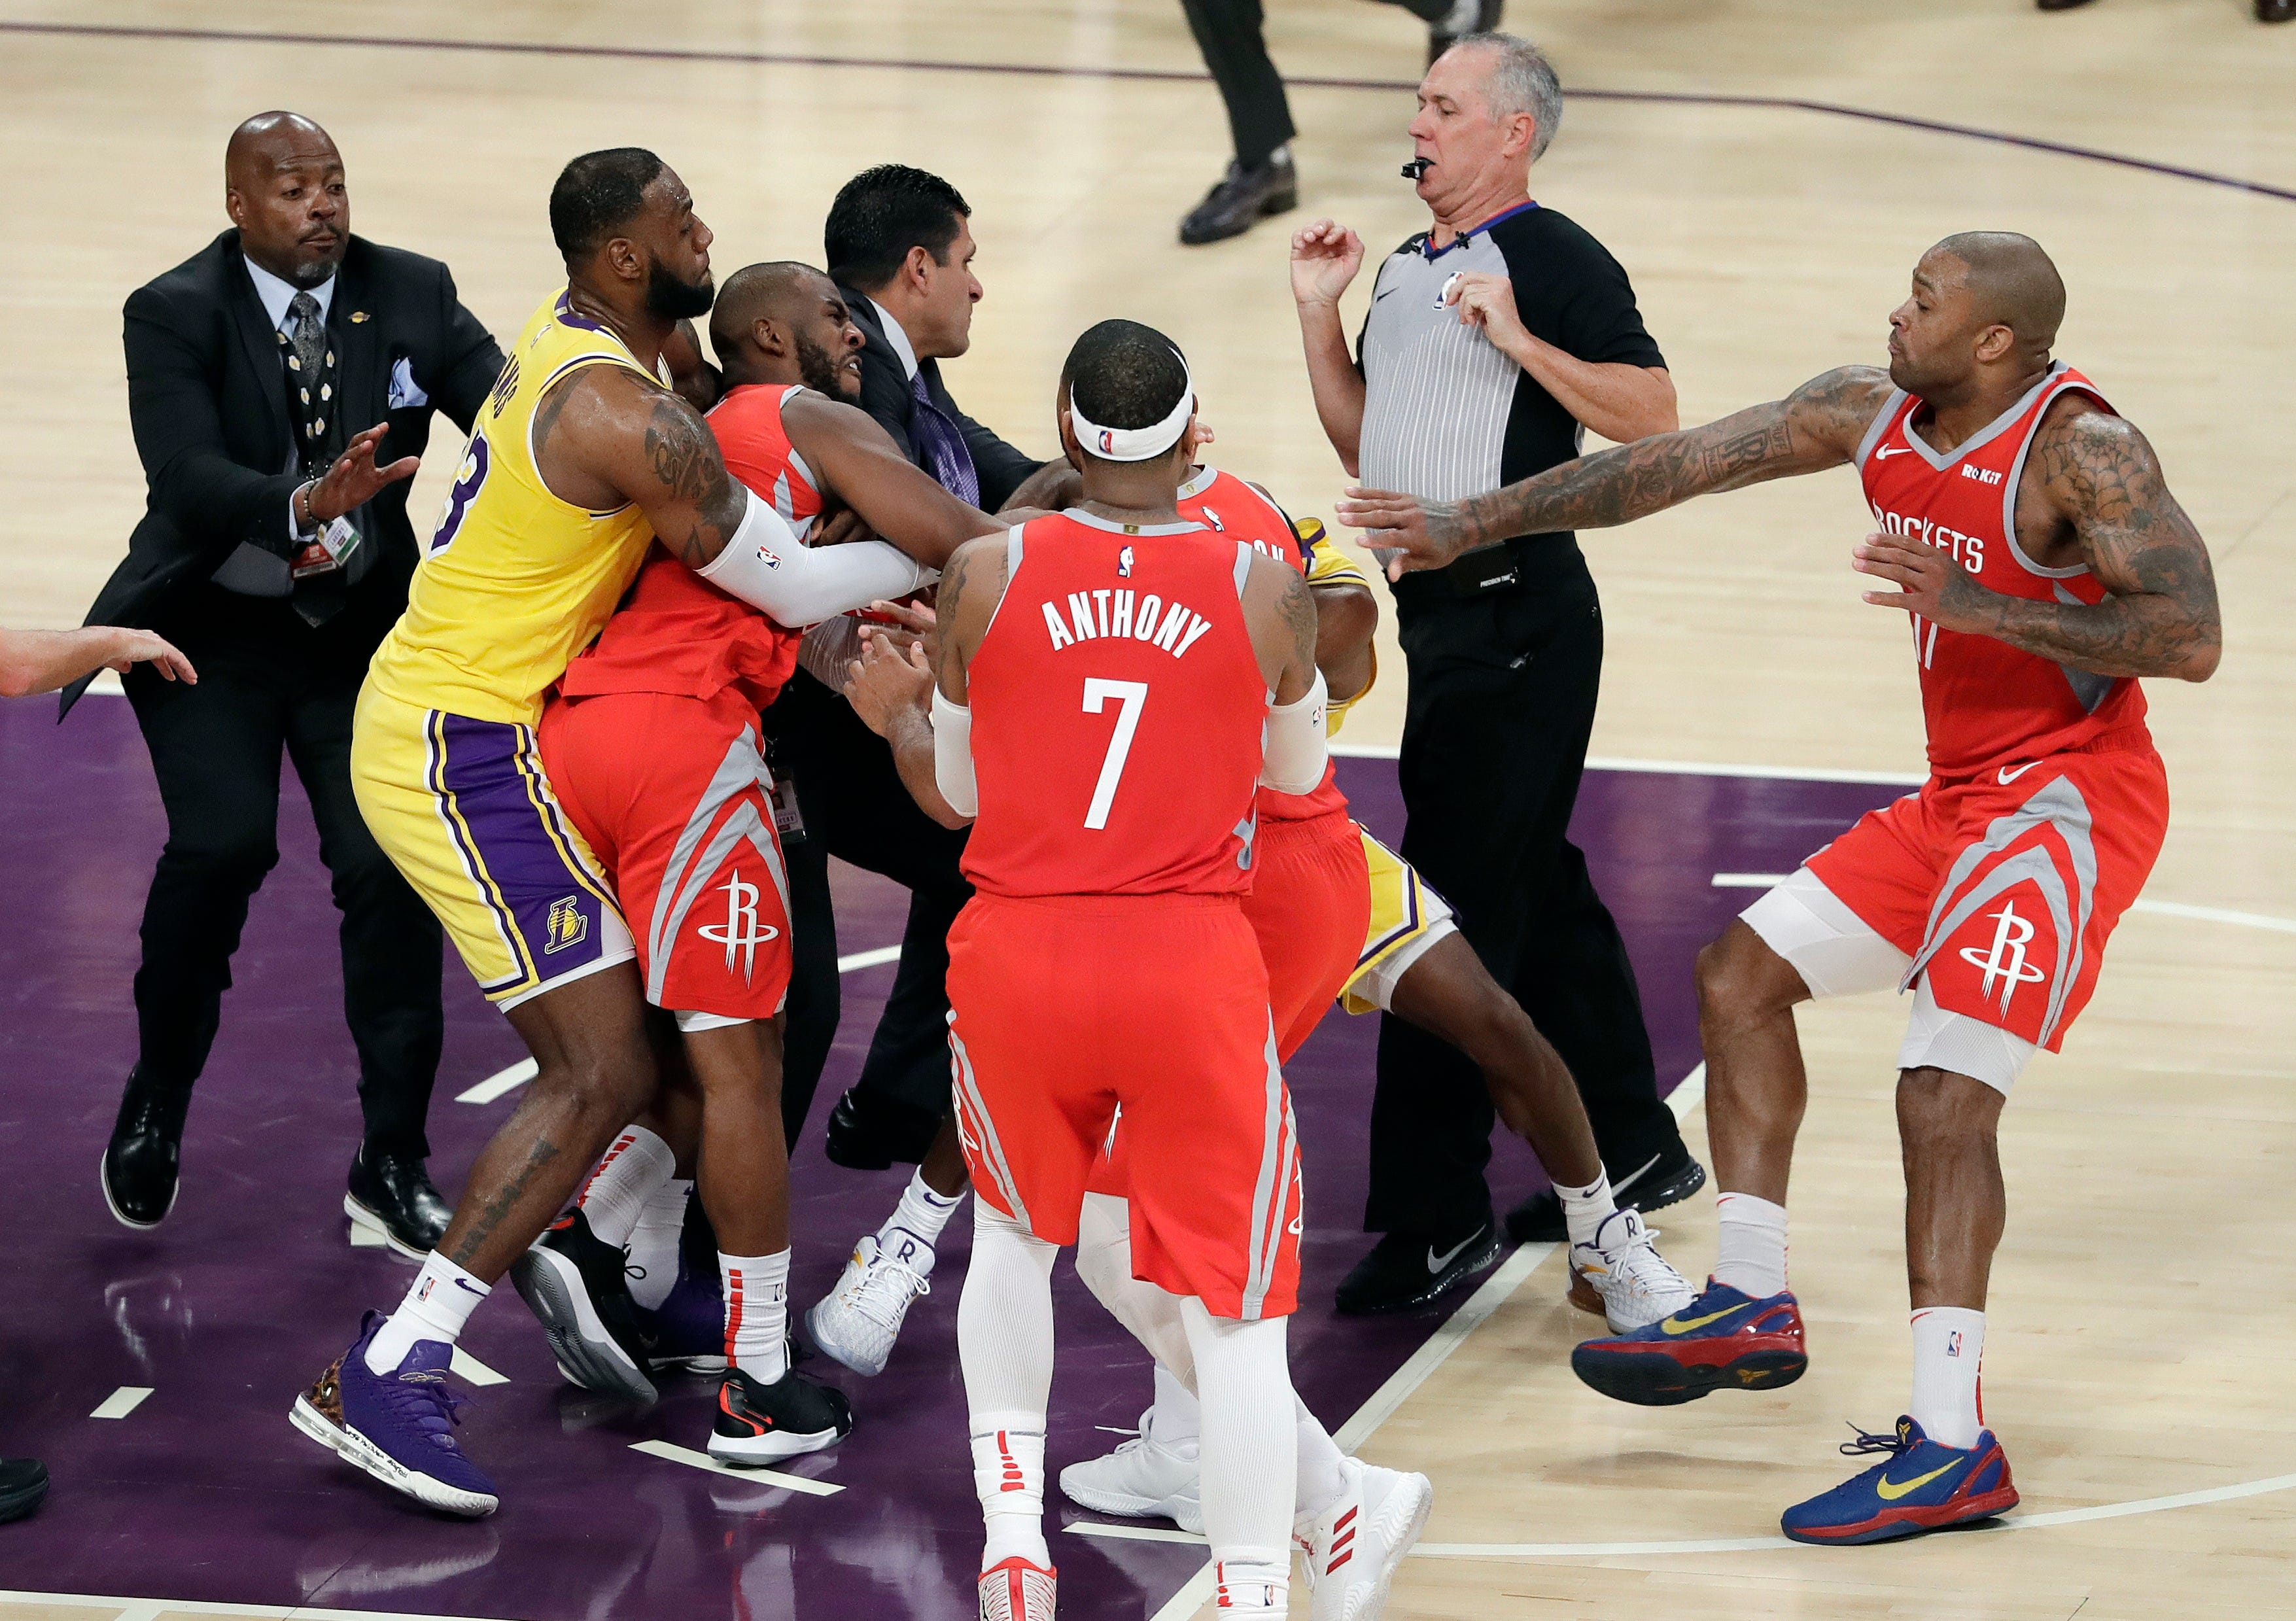 Wild brawl between Lakers and Rockets leads to three ejections